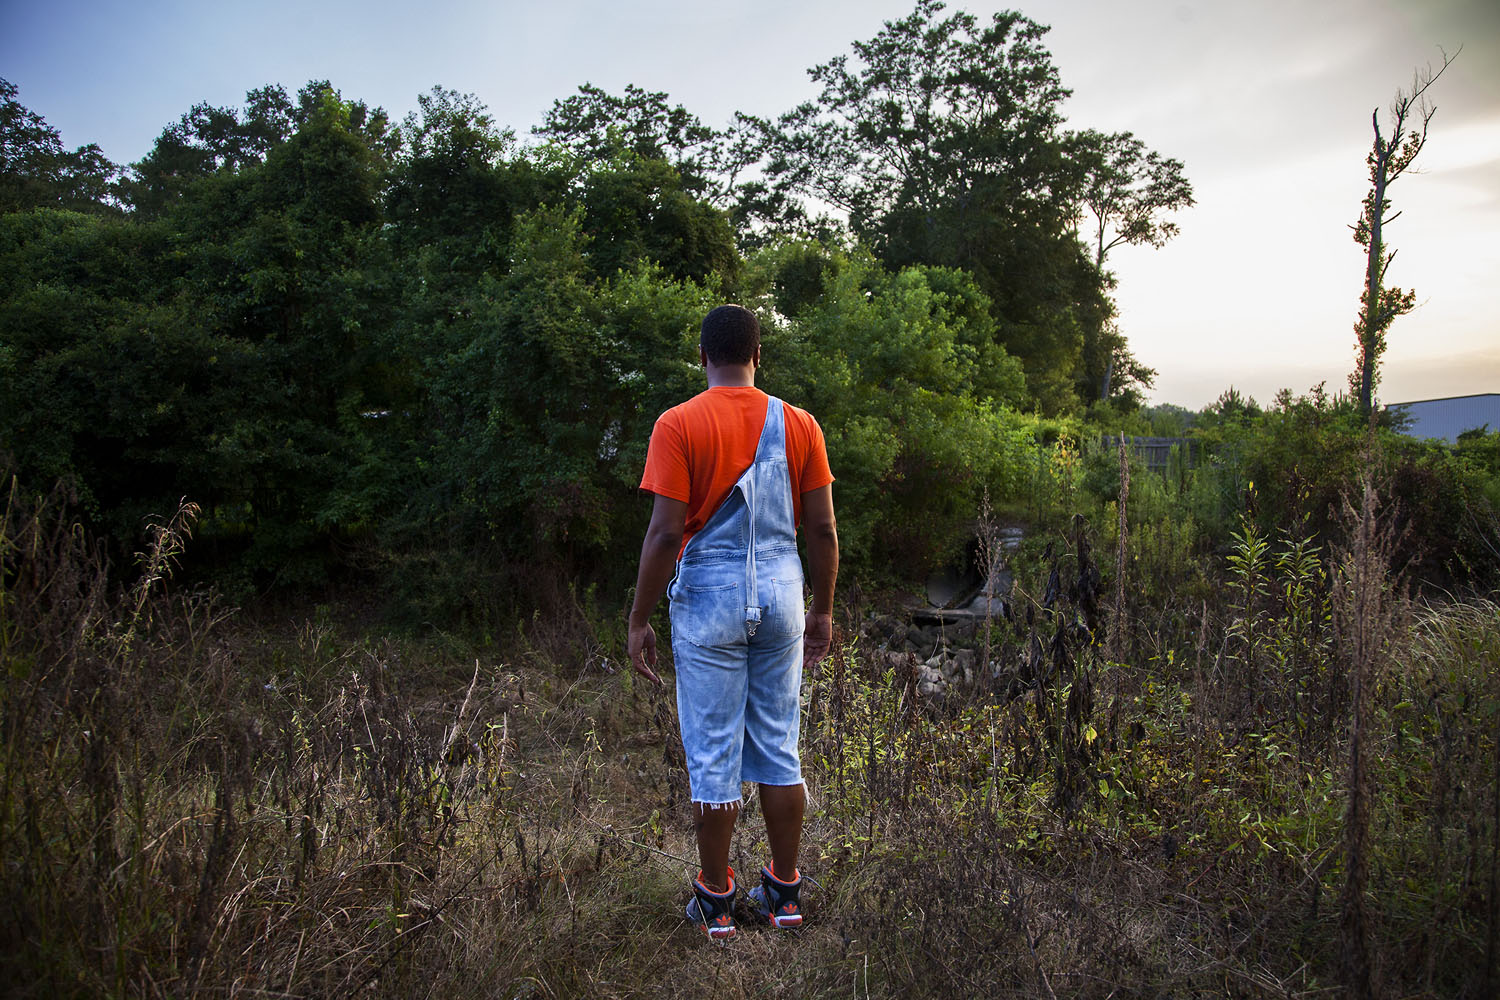 Kentrell surveys a dried creekbed a few blocks from his mother's home.